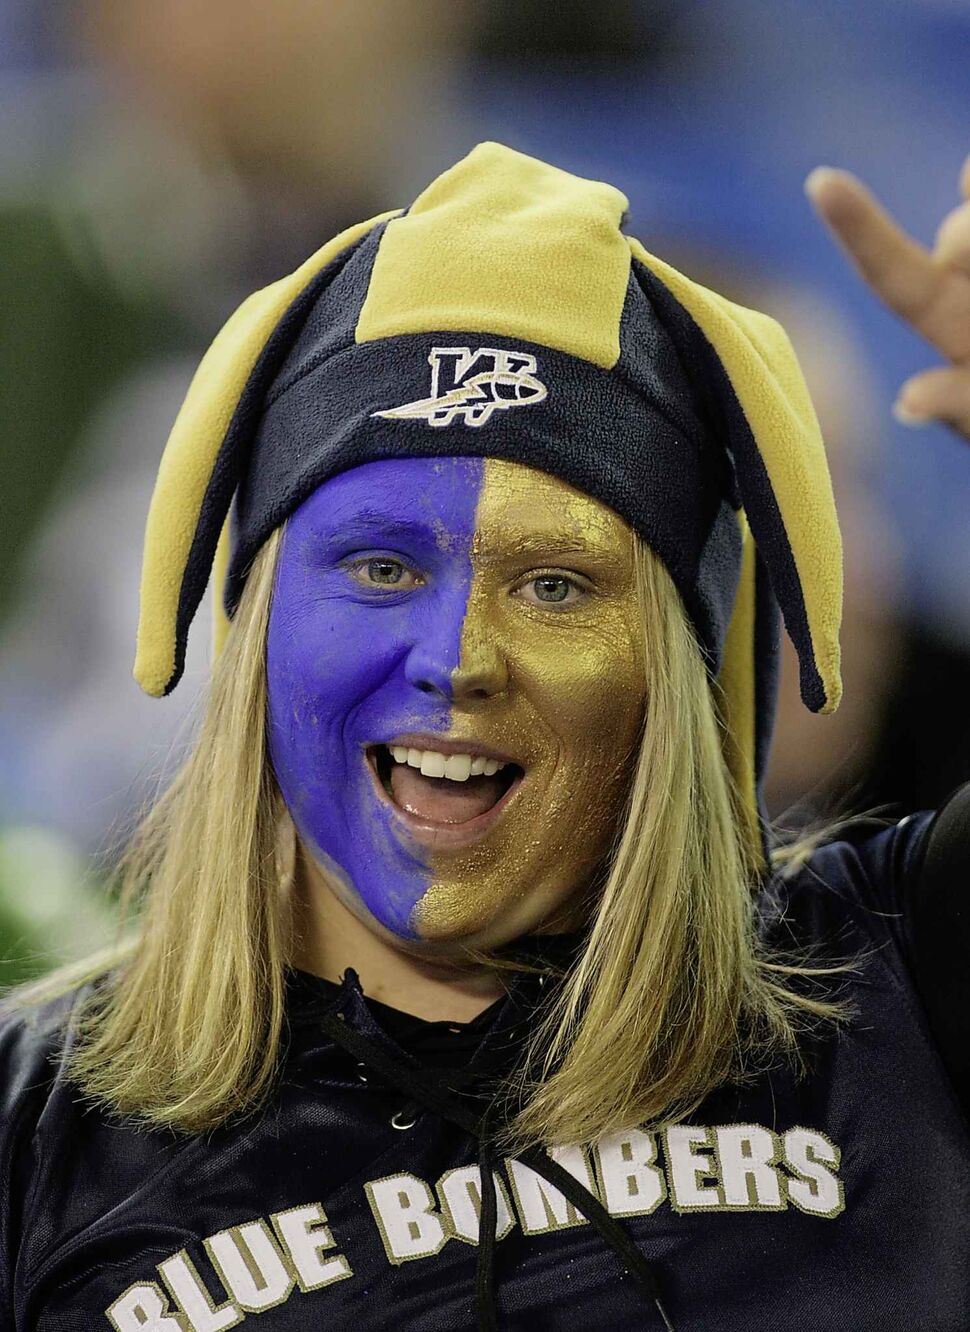 A Winnipeg Blue Bombers fan shows her support for the team prior to the 95th Grey Cup game against the Saskatchewan Roughriders in 2007. Winnipeg lost 23-19. (THE CANADIAN PRESS FILES)